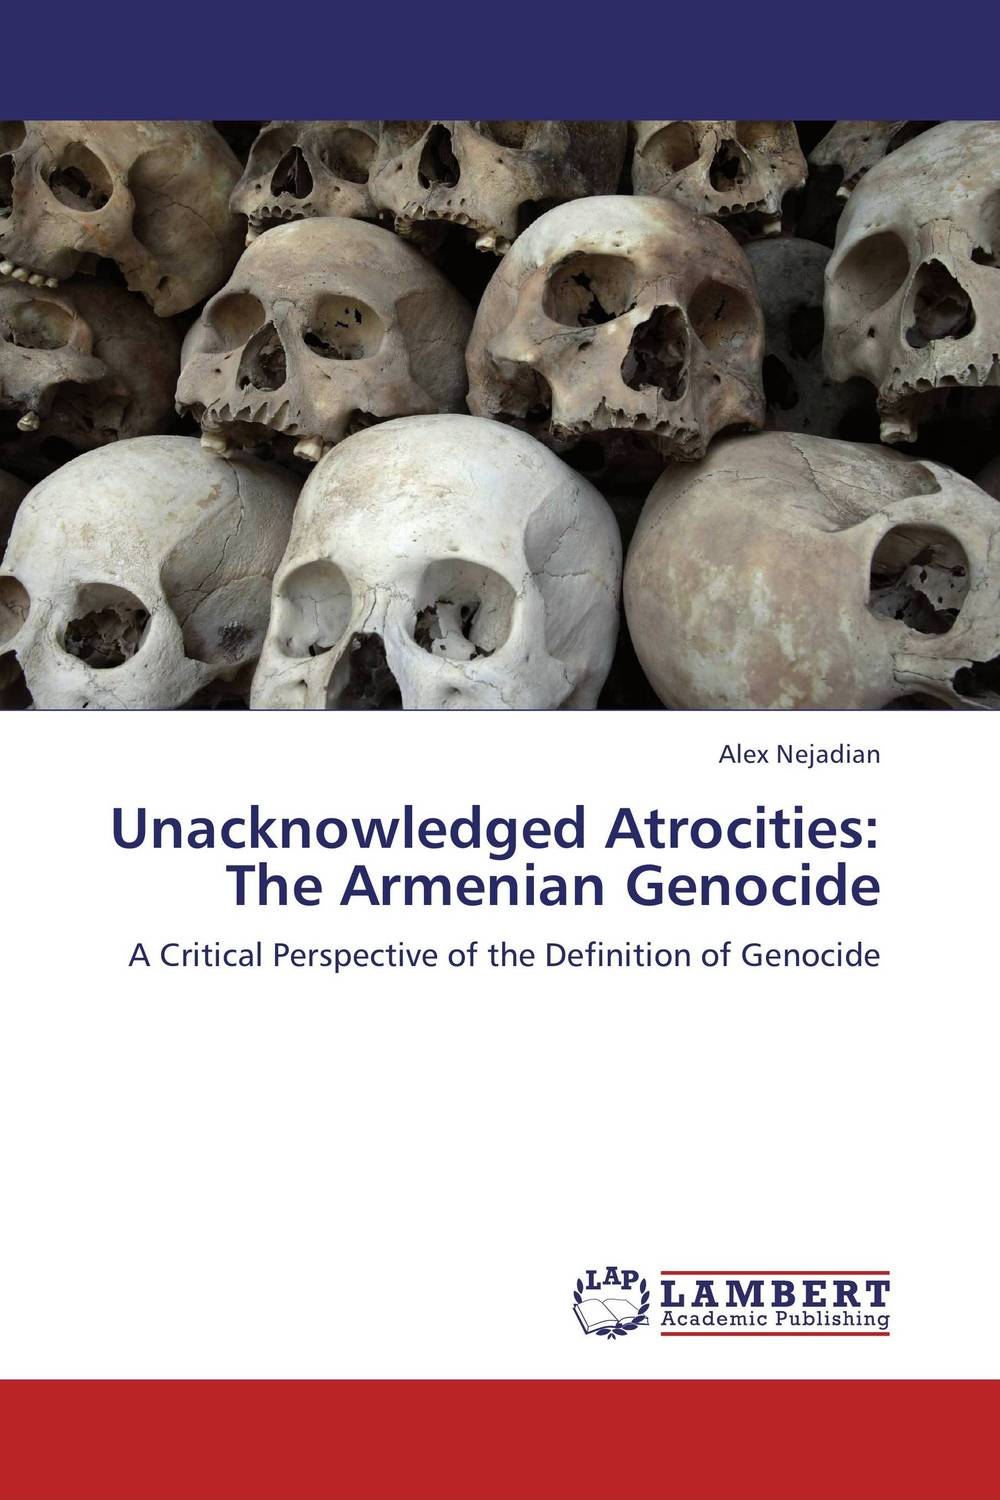 Unacknowledged Atrocities: The Armenian Genocide процессор intel pd945 cpu 775 3 4g pd 945